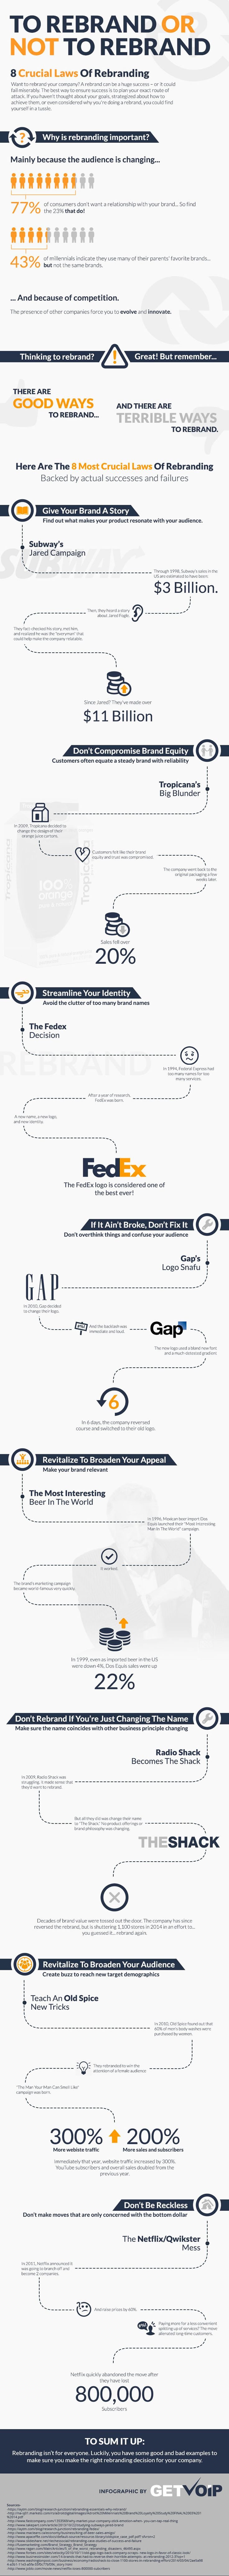 The 8 Must-Follow Rules for Rebranding Your Company (Infographic)